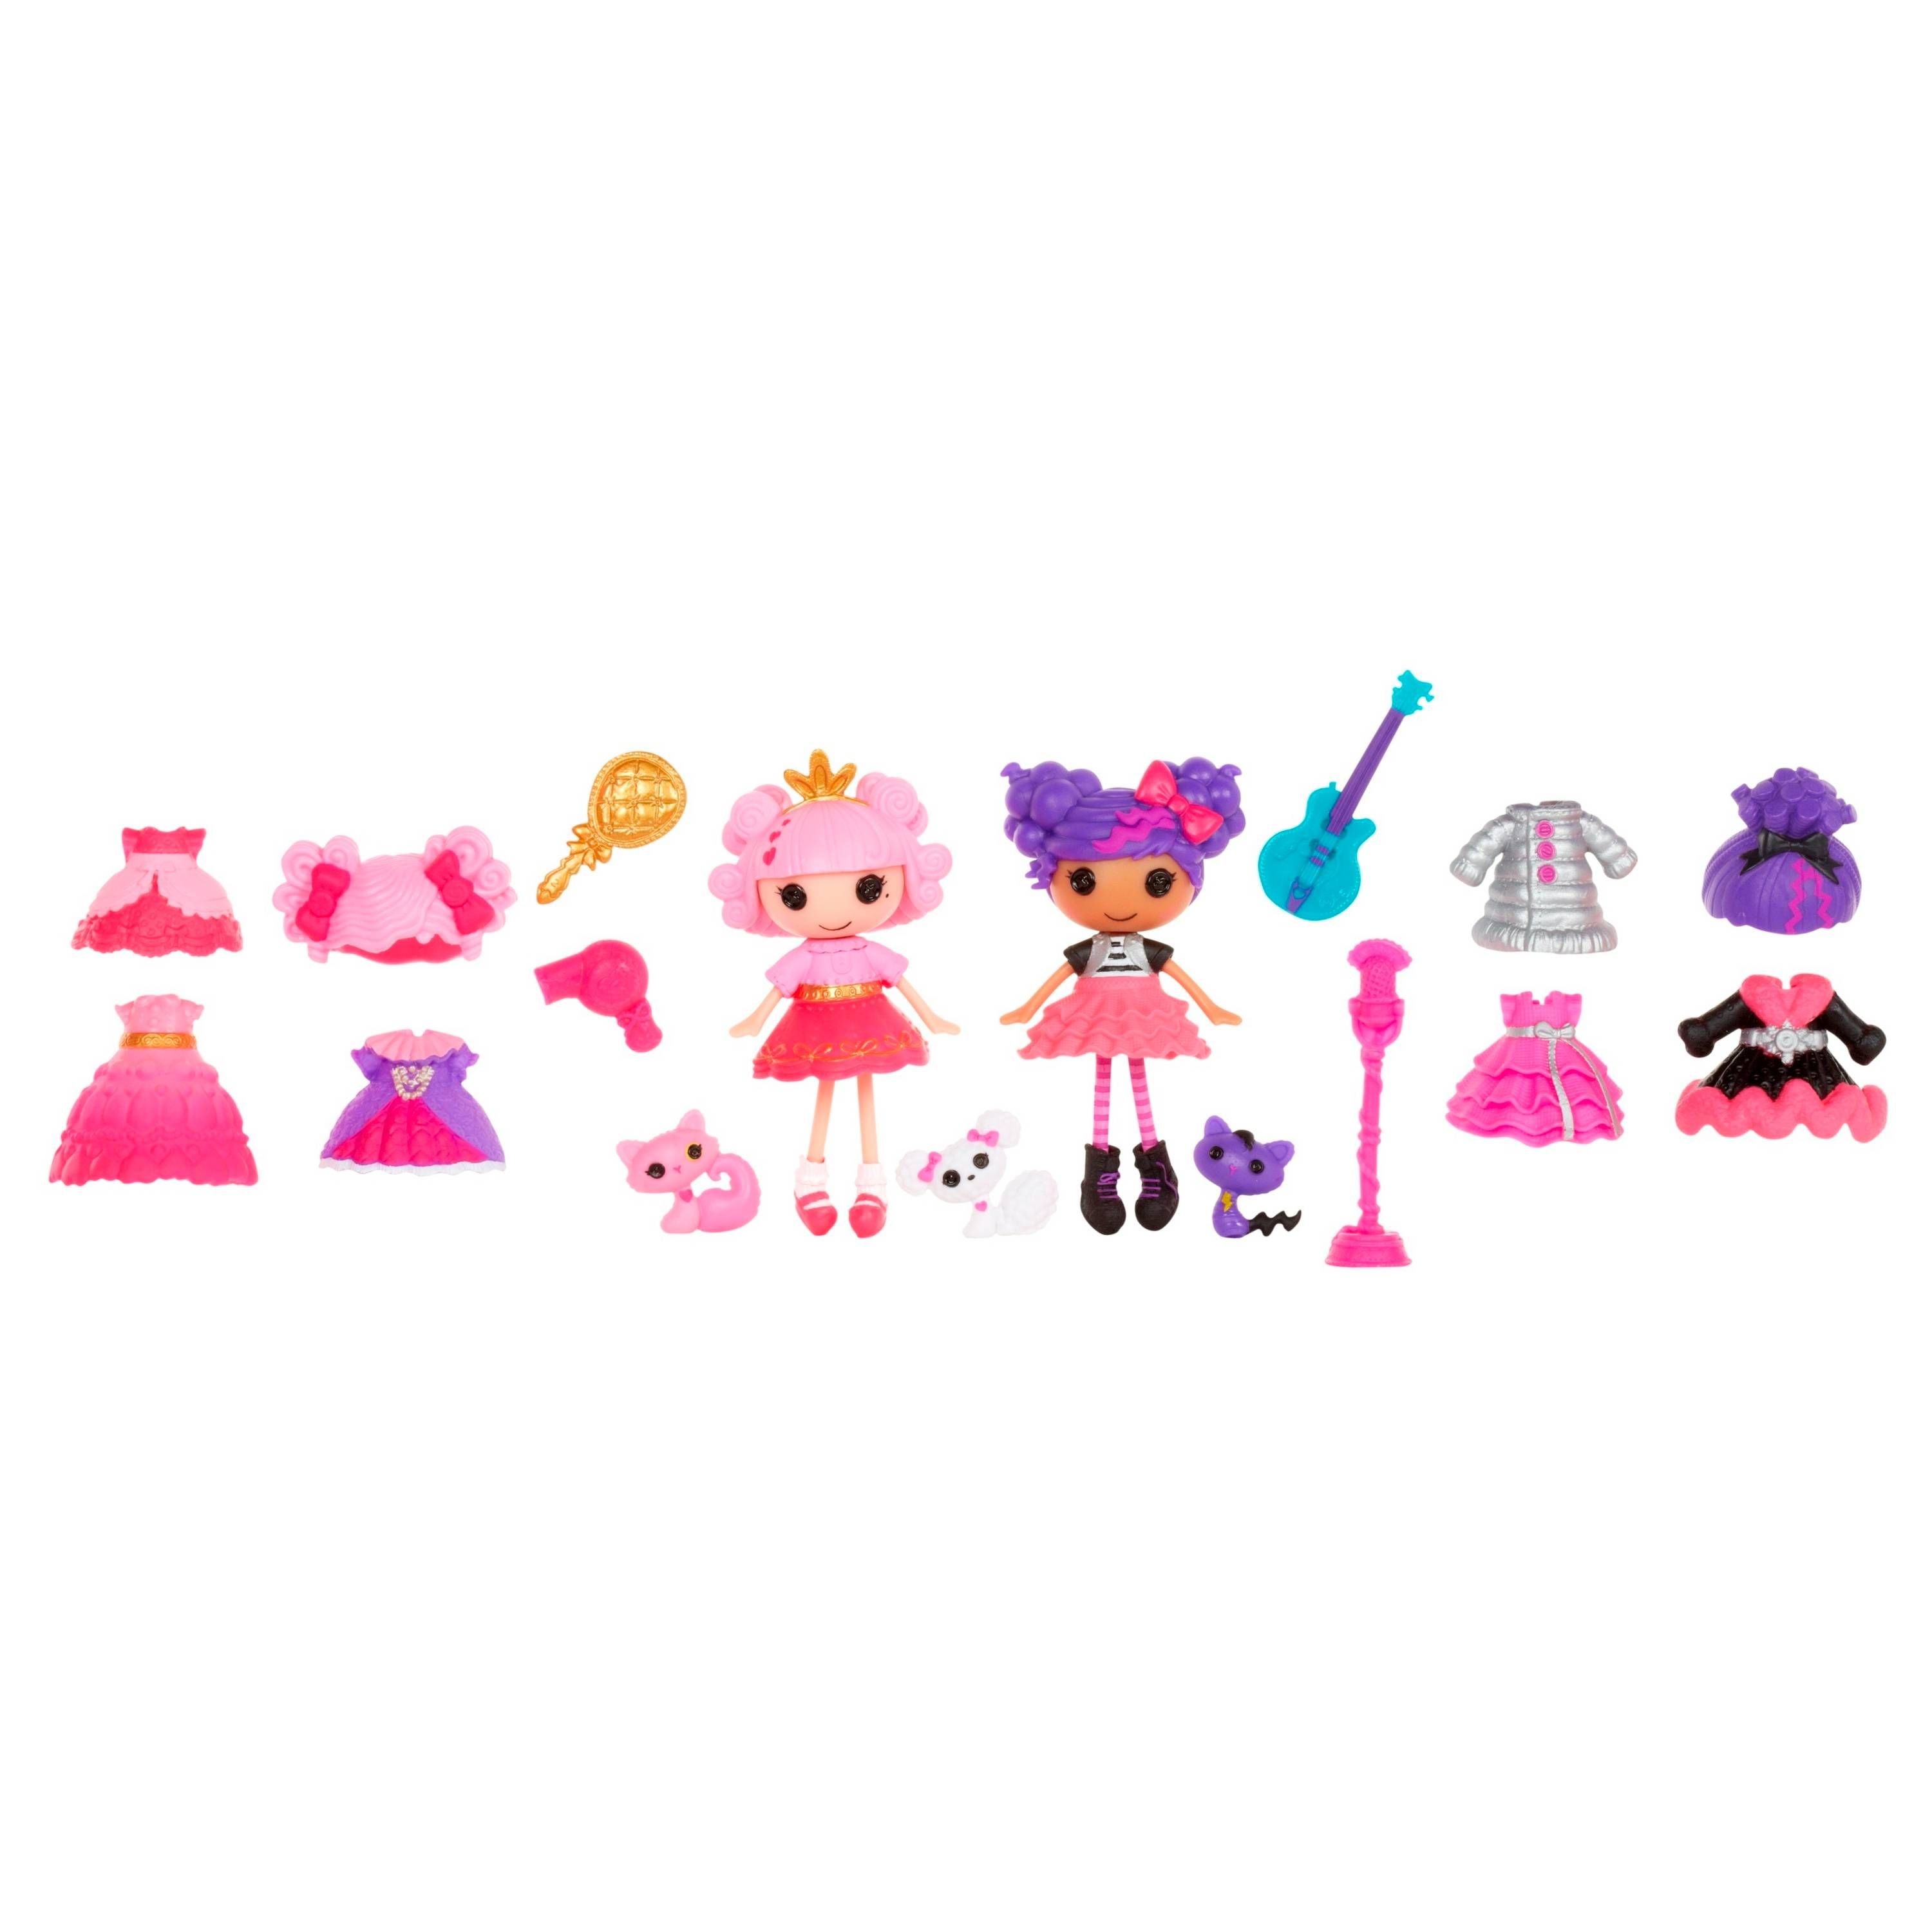 Mini Lalaloopsy dolls come with an adorable pet, mix and ... on